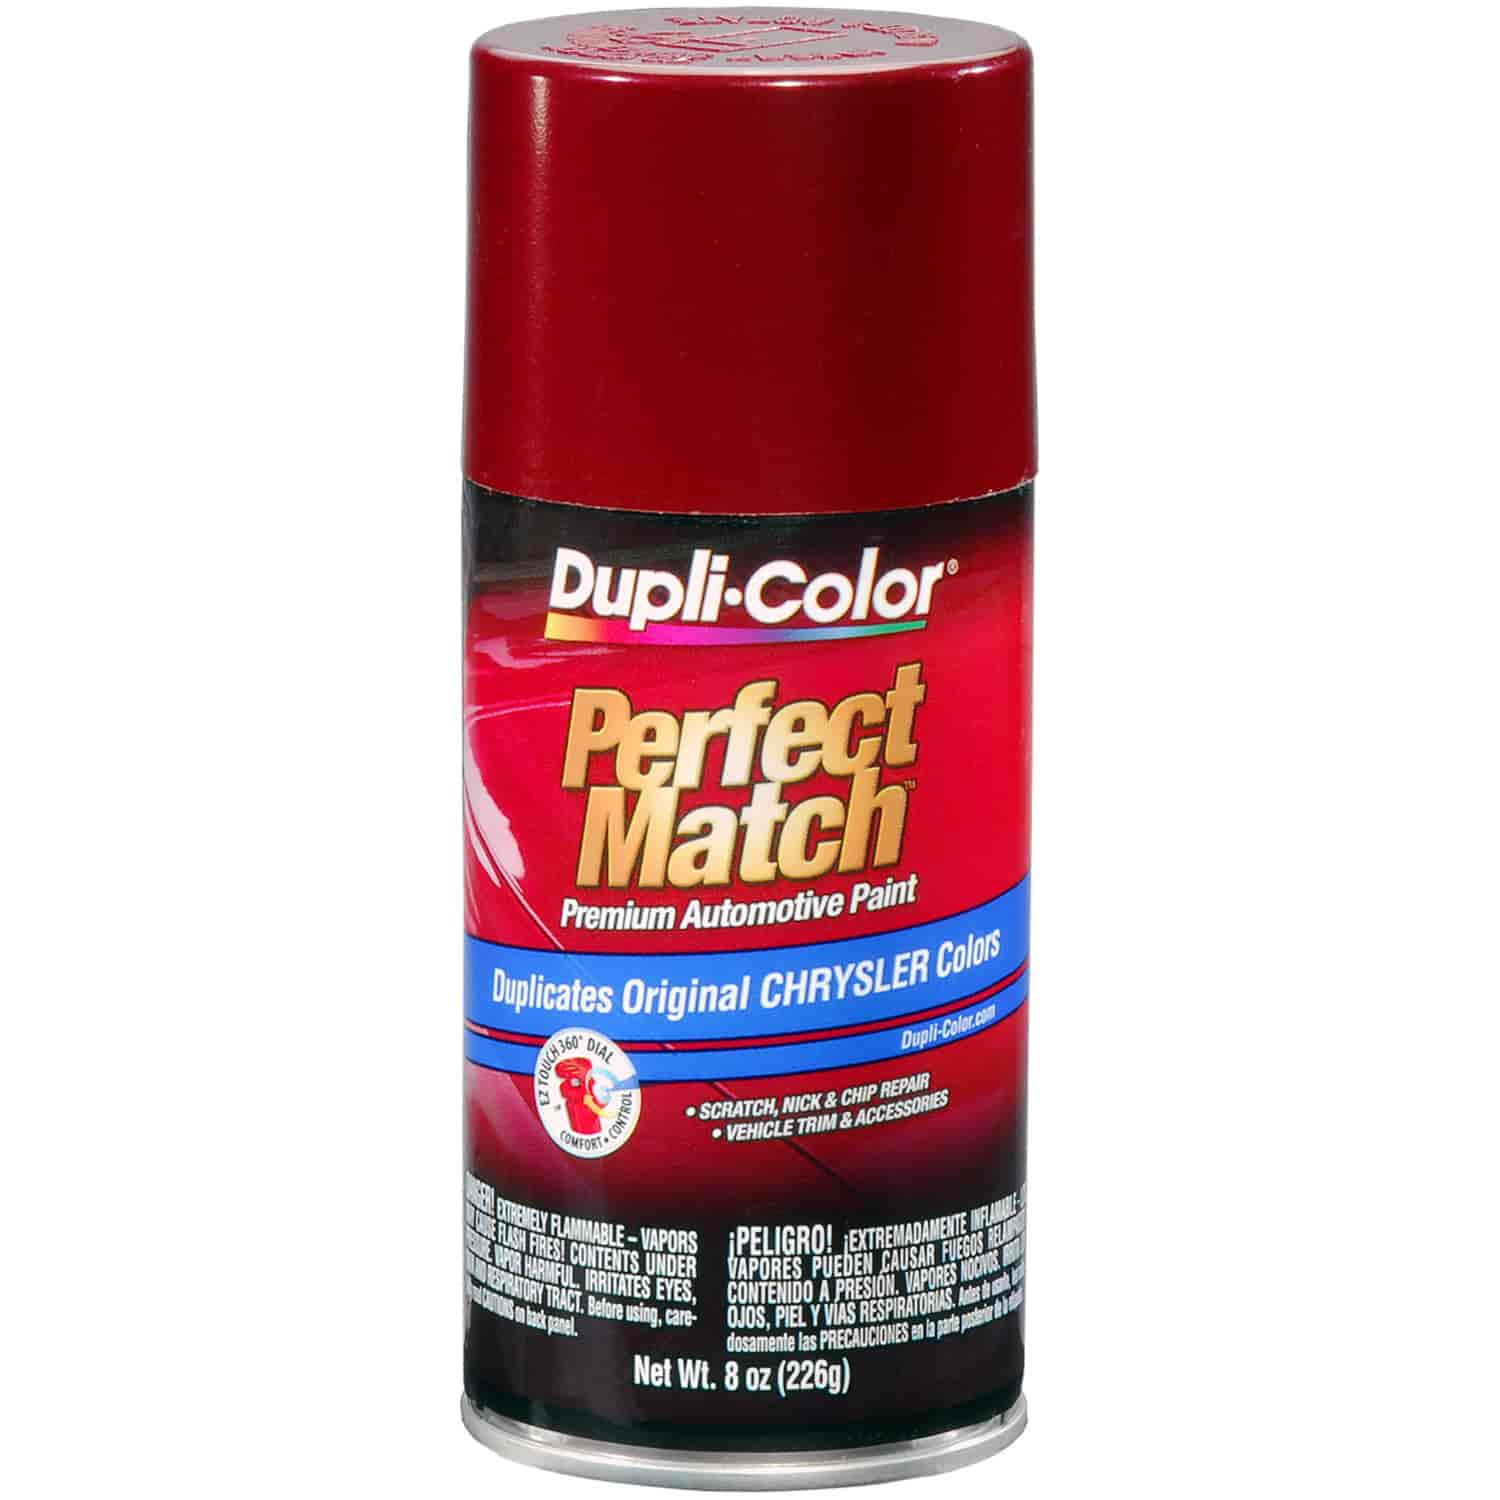 Duplicolor BCC0365 - Duplicolor Perfect Match Touch-Up Paint